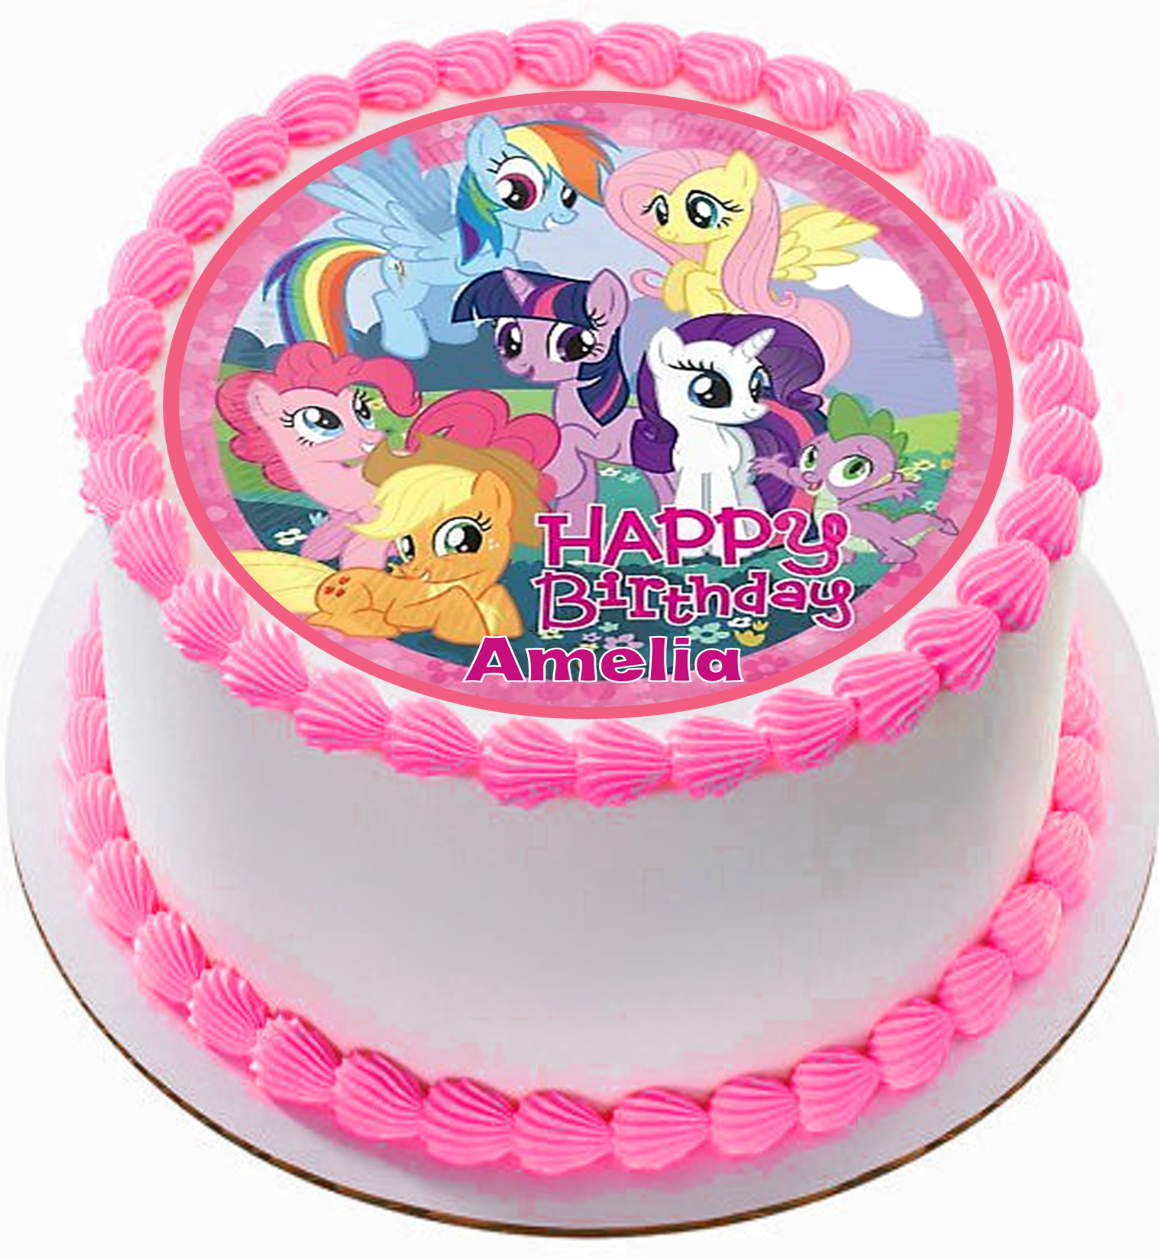 Astonishing Edible My Little Pony Personalized Circle Cake Topper Birthday Personalised Birthday Cards Paralily Jamesorg